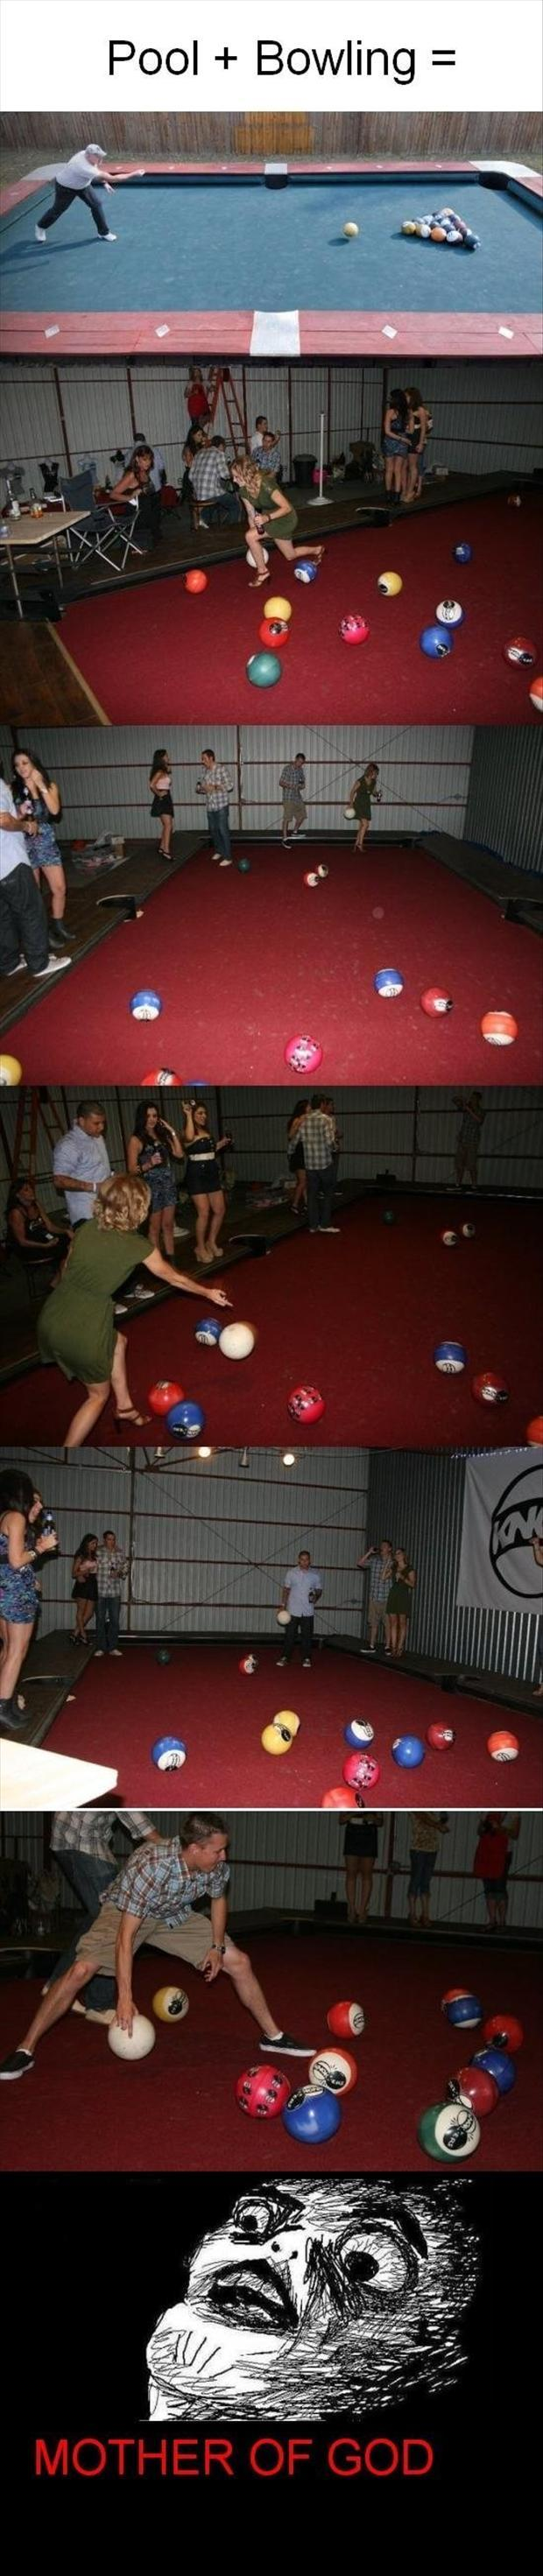 bowling pool, funny pictures